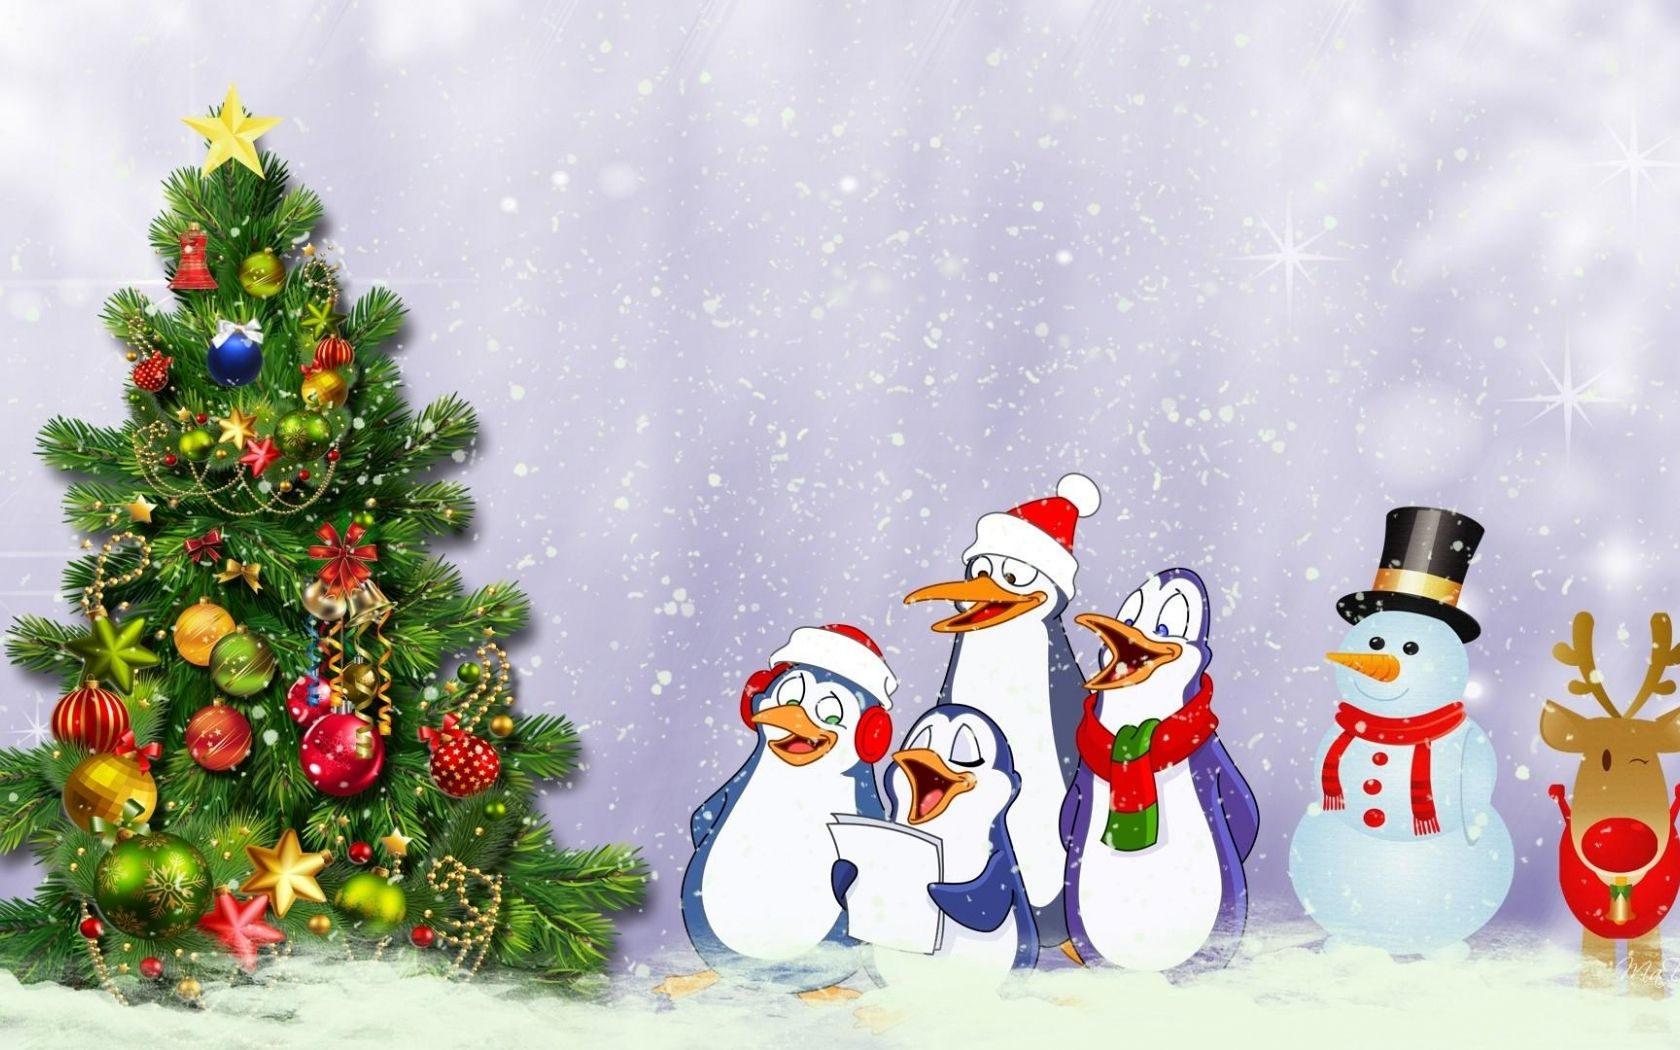 Undefined Christmas Tree Wallpaper Iphone Christmas Tree Wallpaper Wallpaper Iphone Christmas